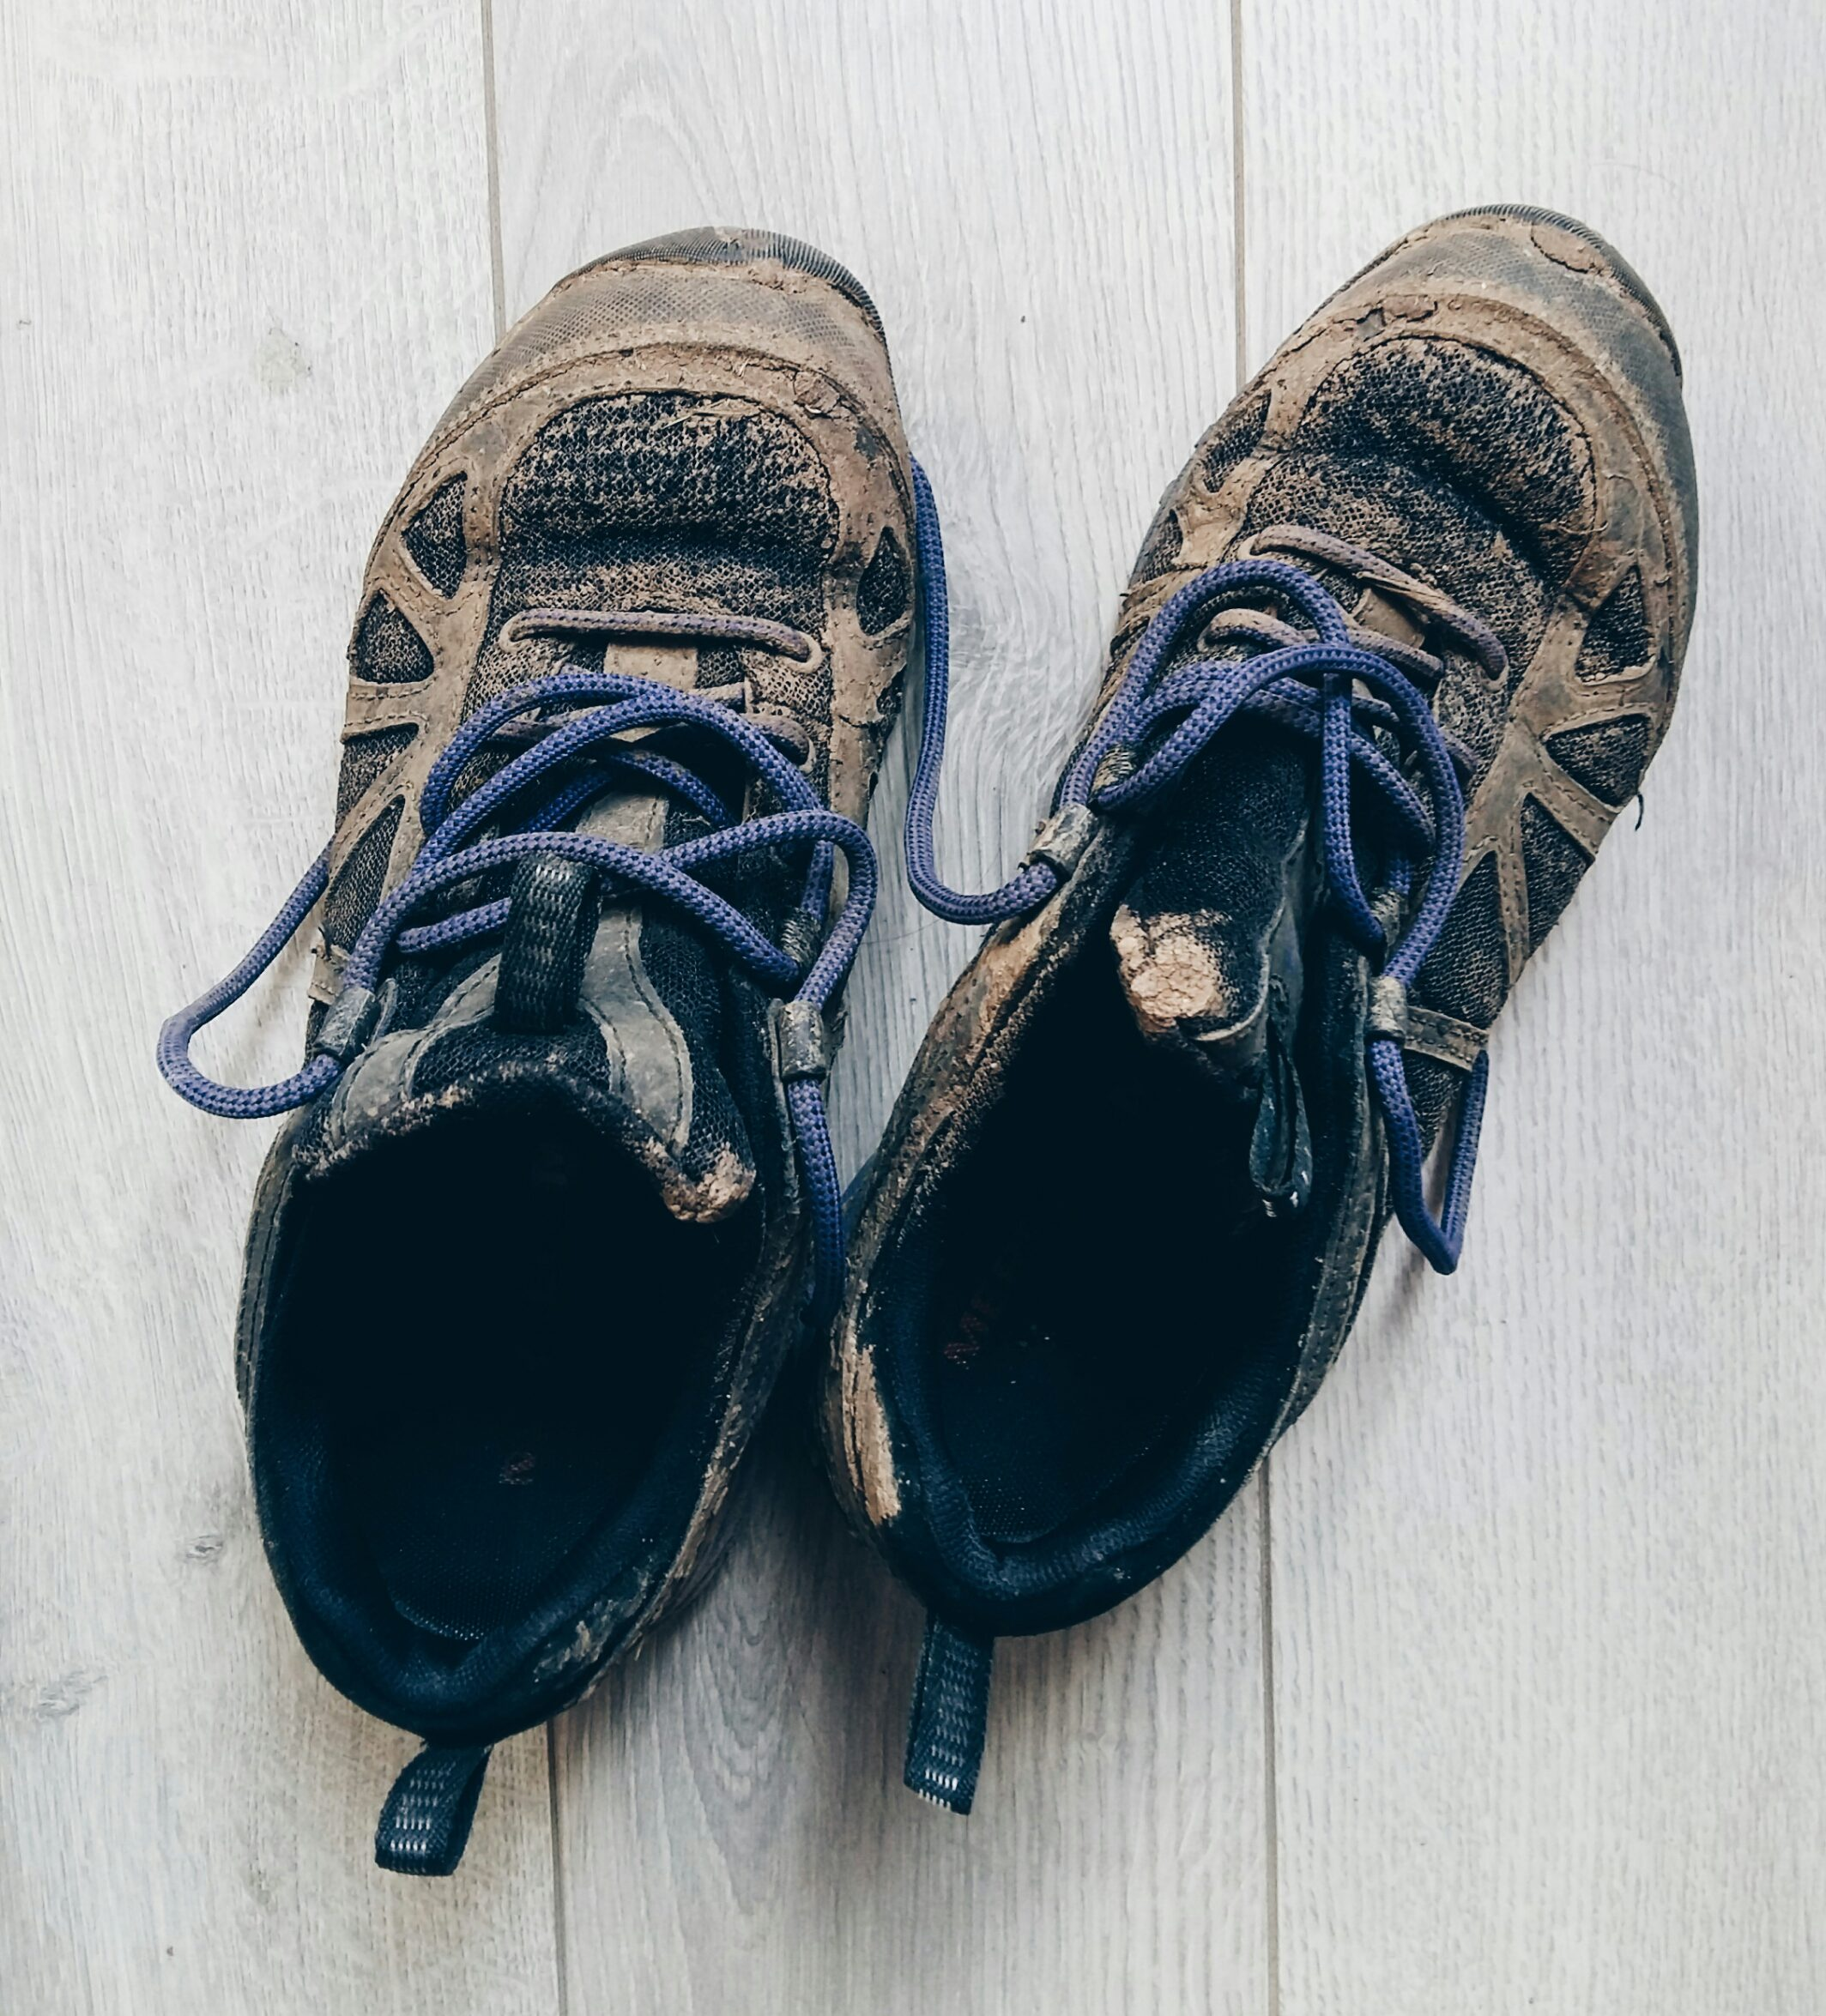 Clean your hiking and trail running shoes